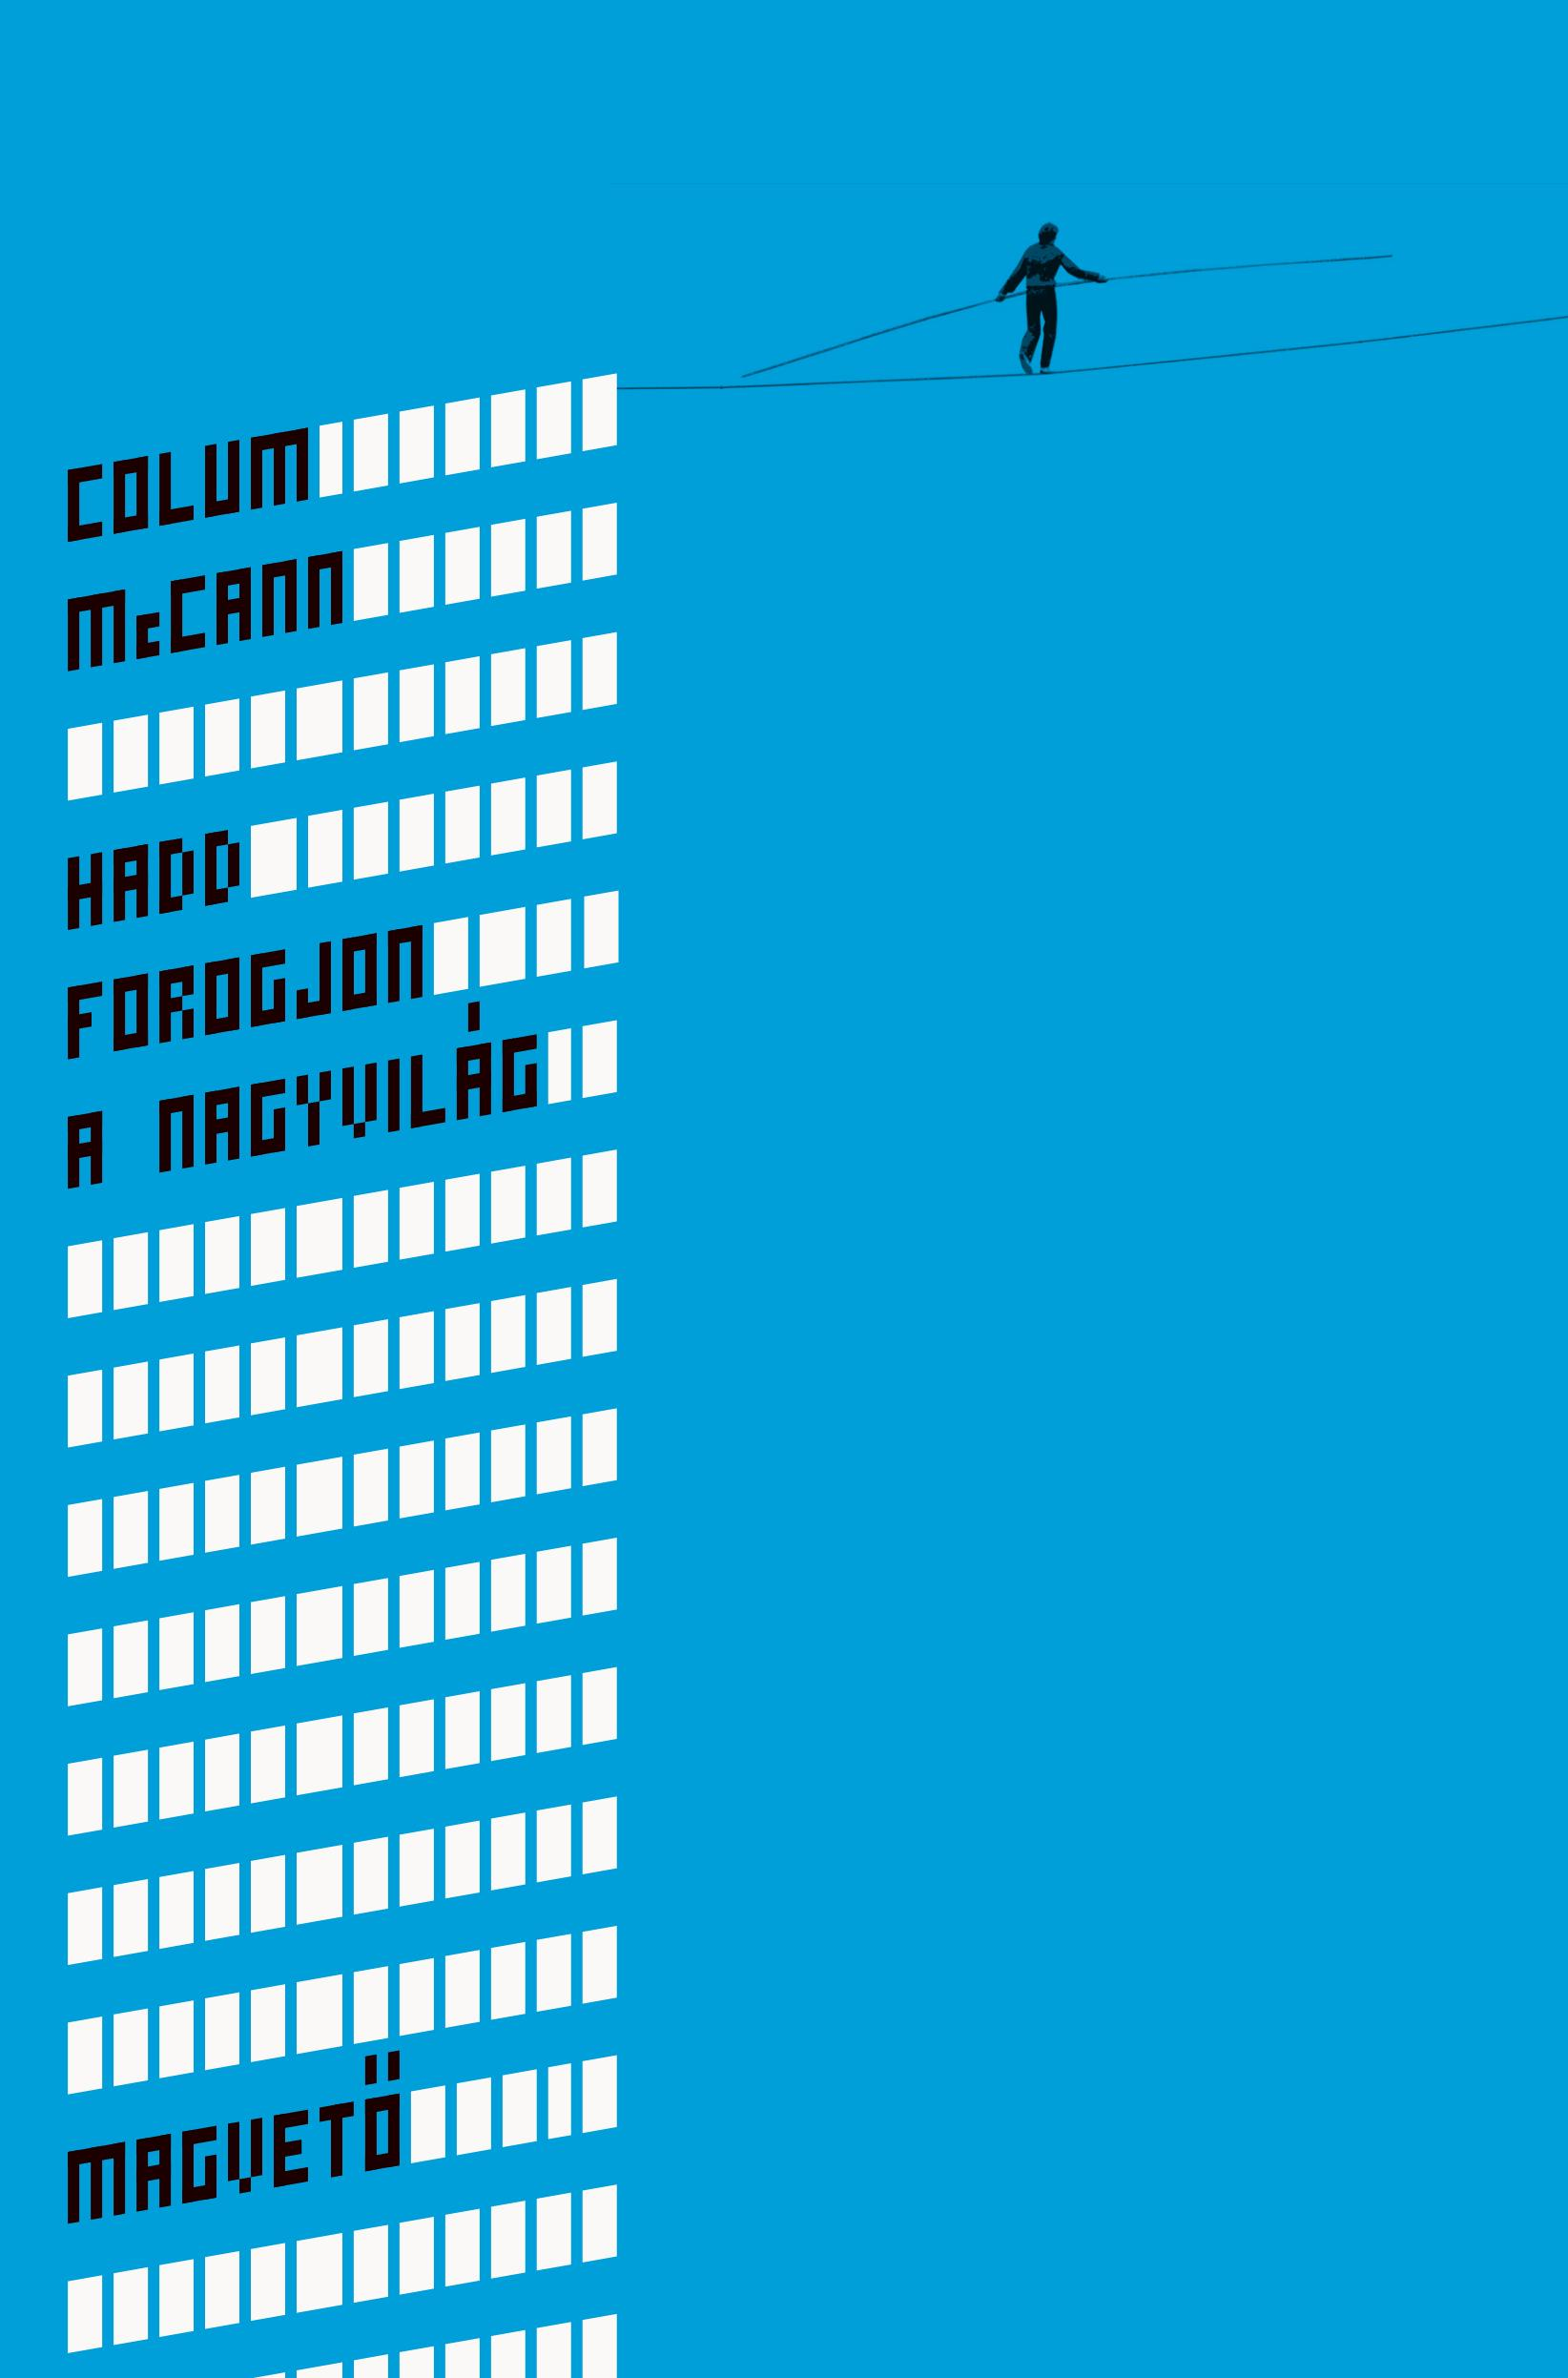 Colum_McCann_-_Let_the_Great_World_Spin_----_Cover_design_1.jpg